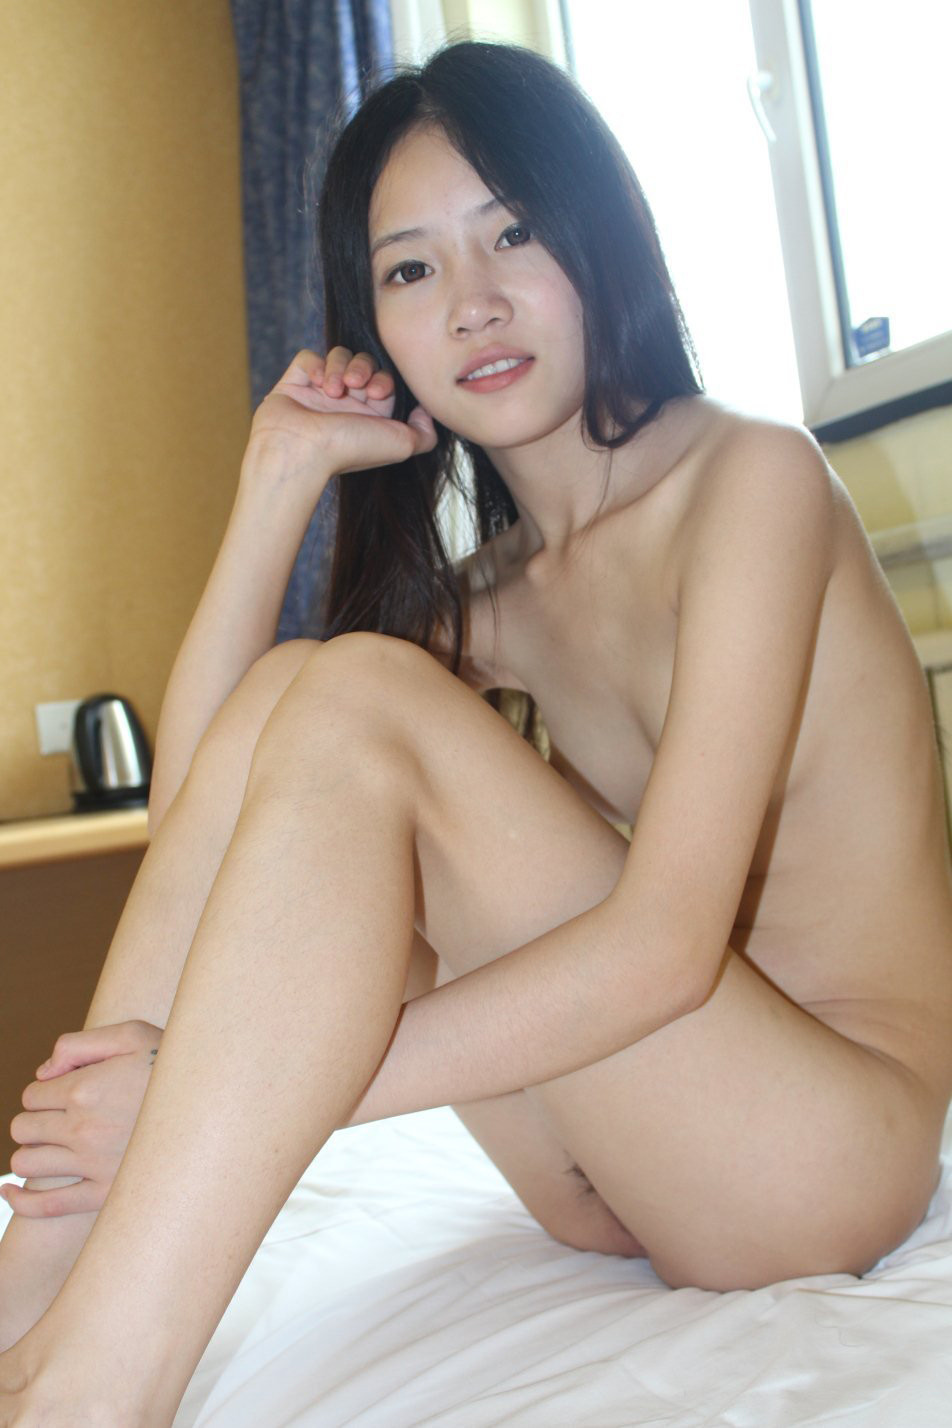 Pictures of chinese girls naked